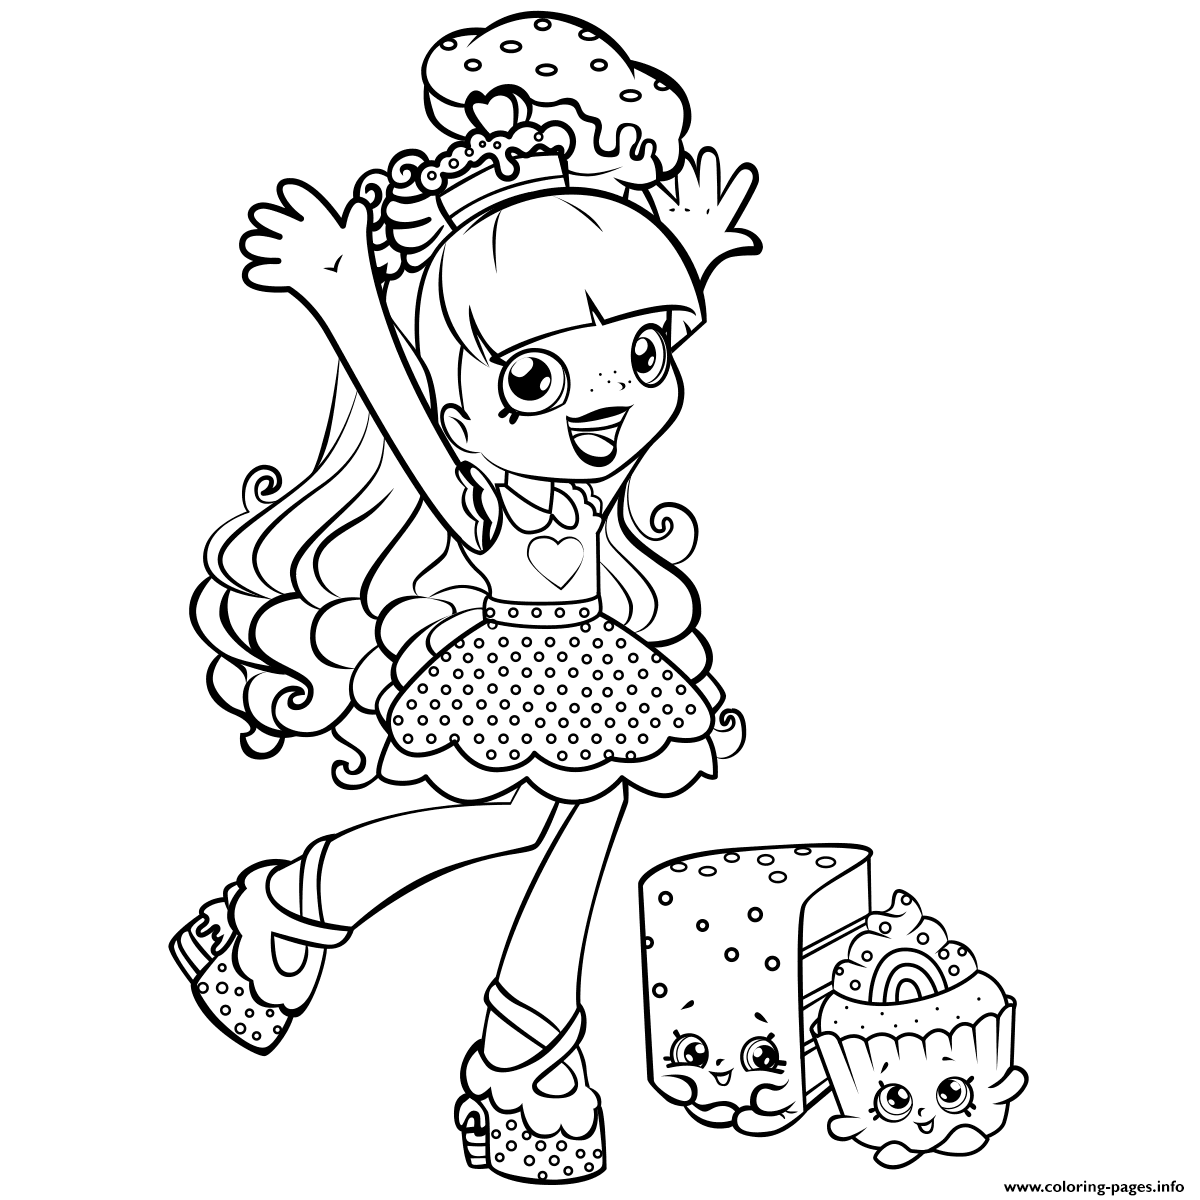 Shopkins coloring pages to print out - Shopkins Shoppies Colouring Print Shopkins Shoppies Coloring Pages